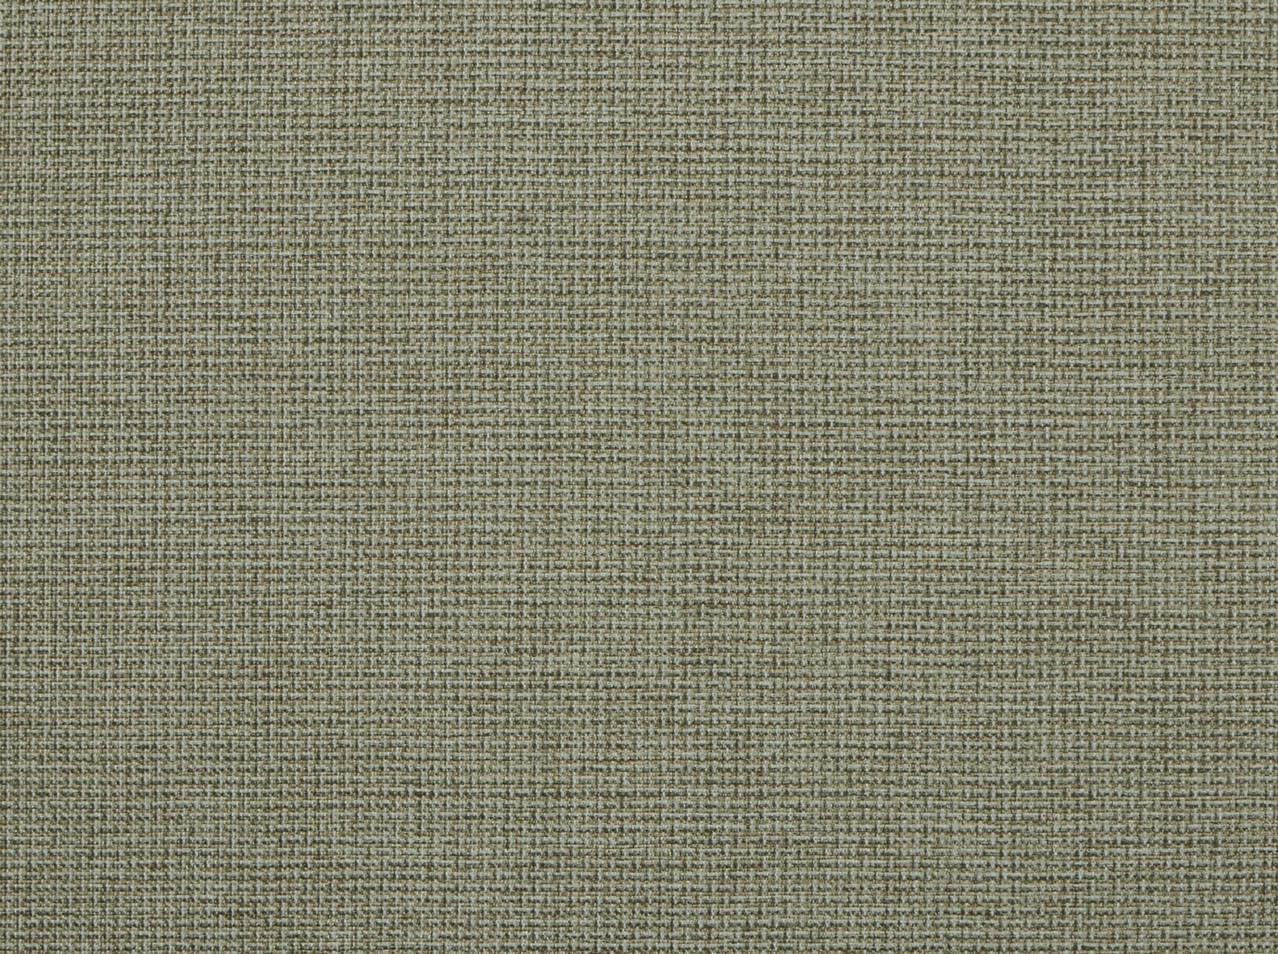 Covington Solids%20and%20Textures Navigator